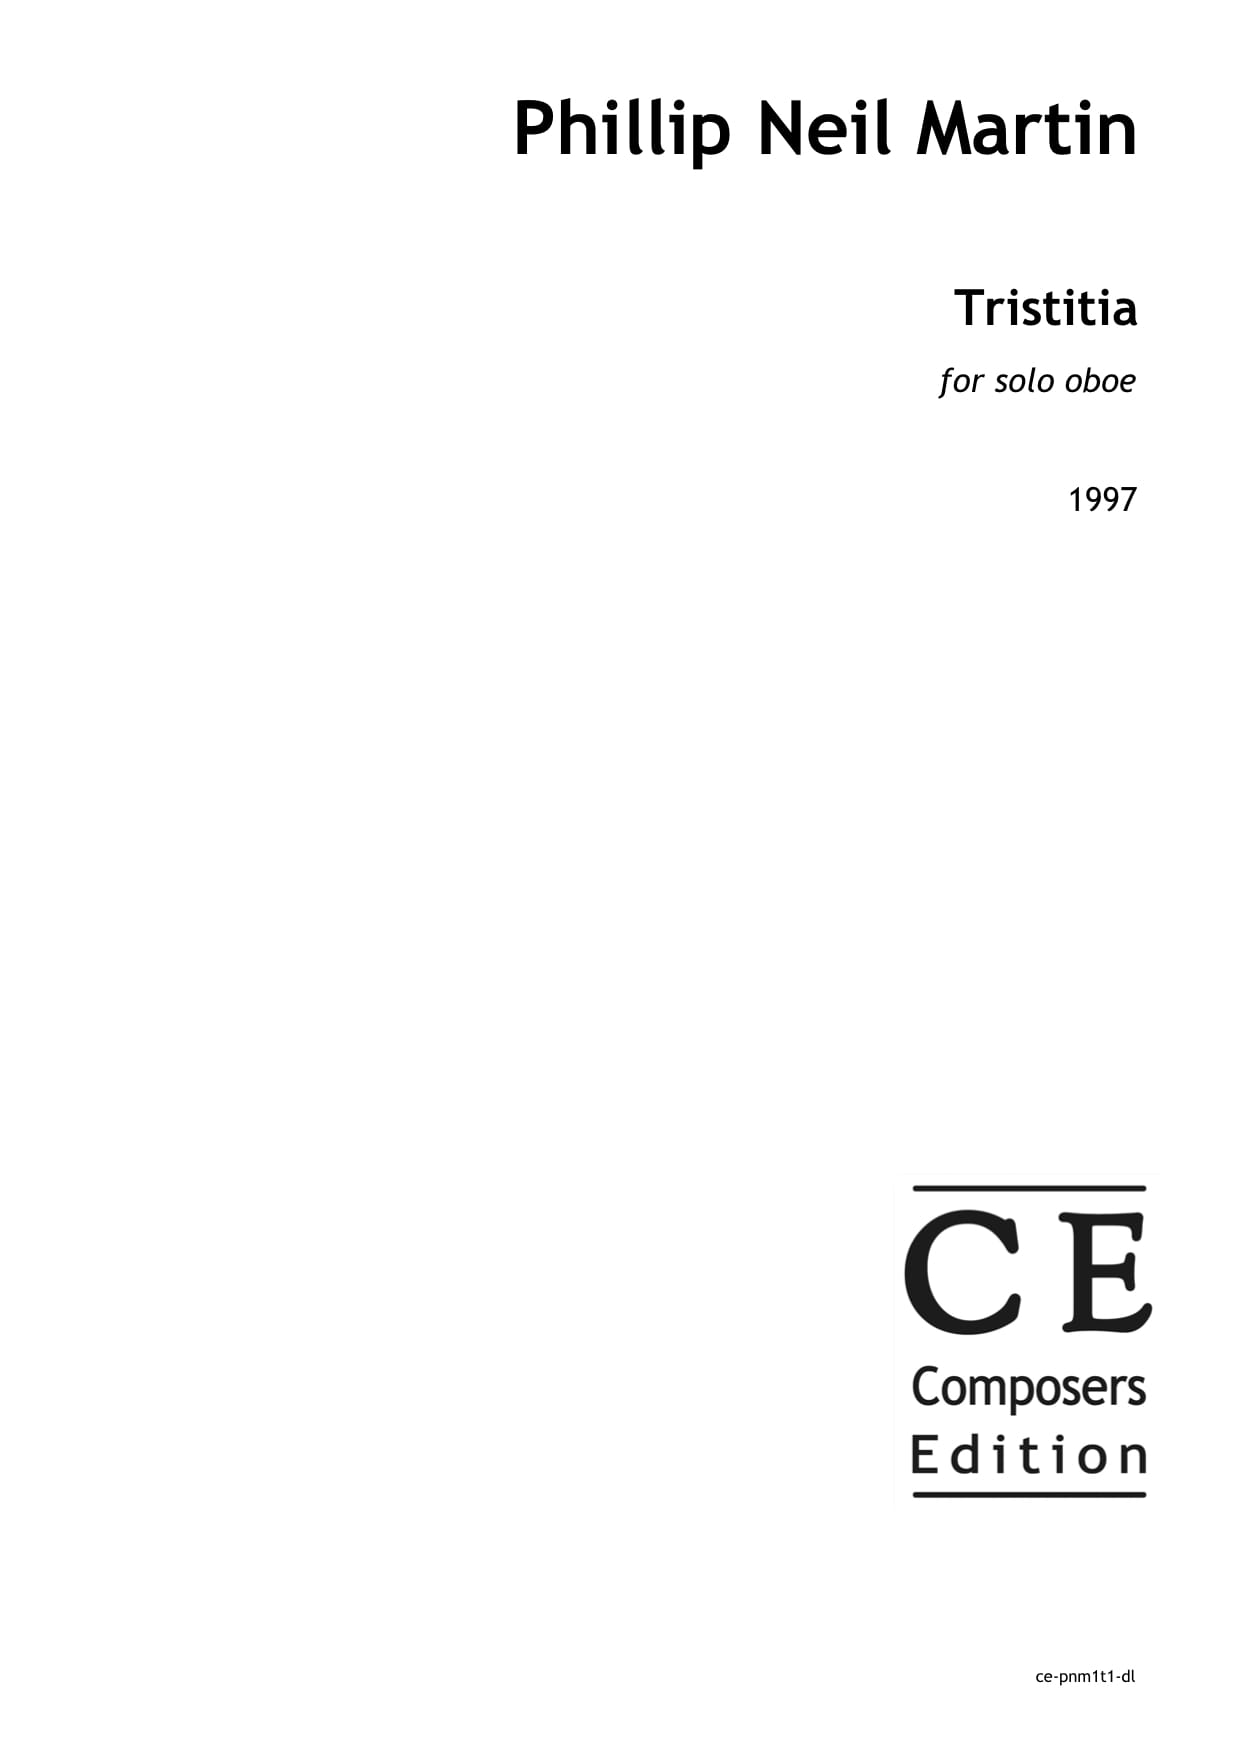 Phillip Neil Martin: Tristitia for solo oboe